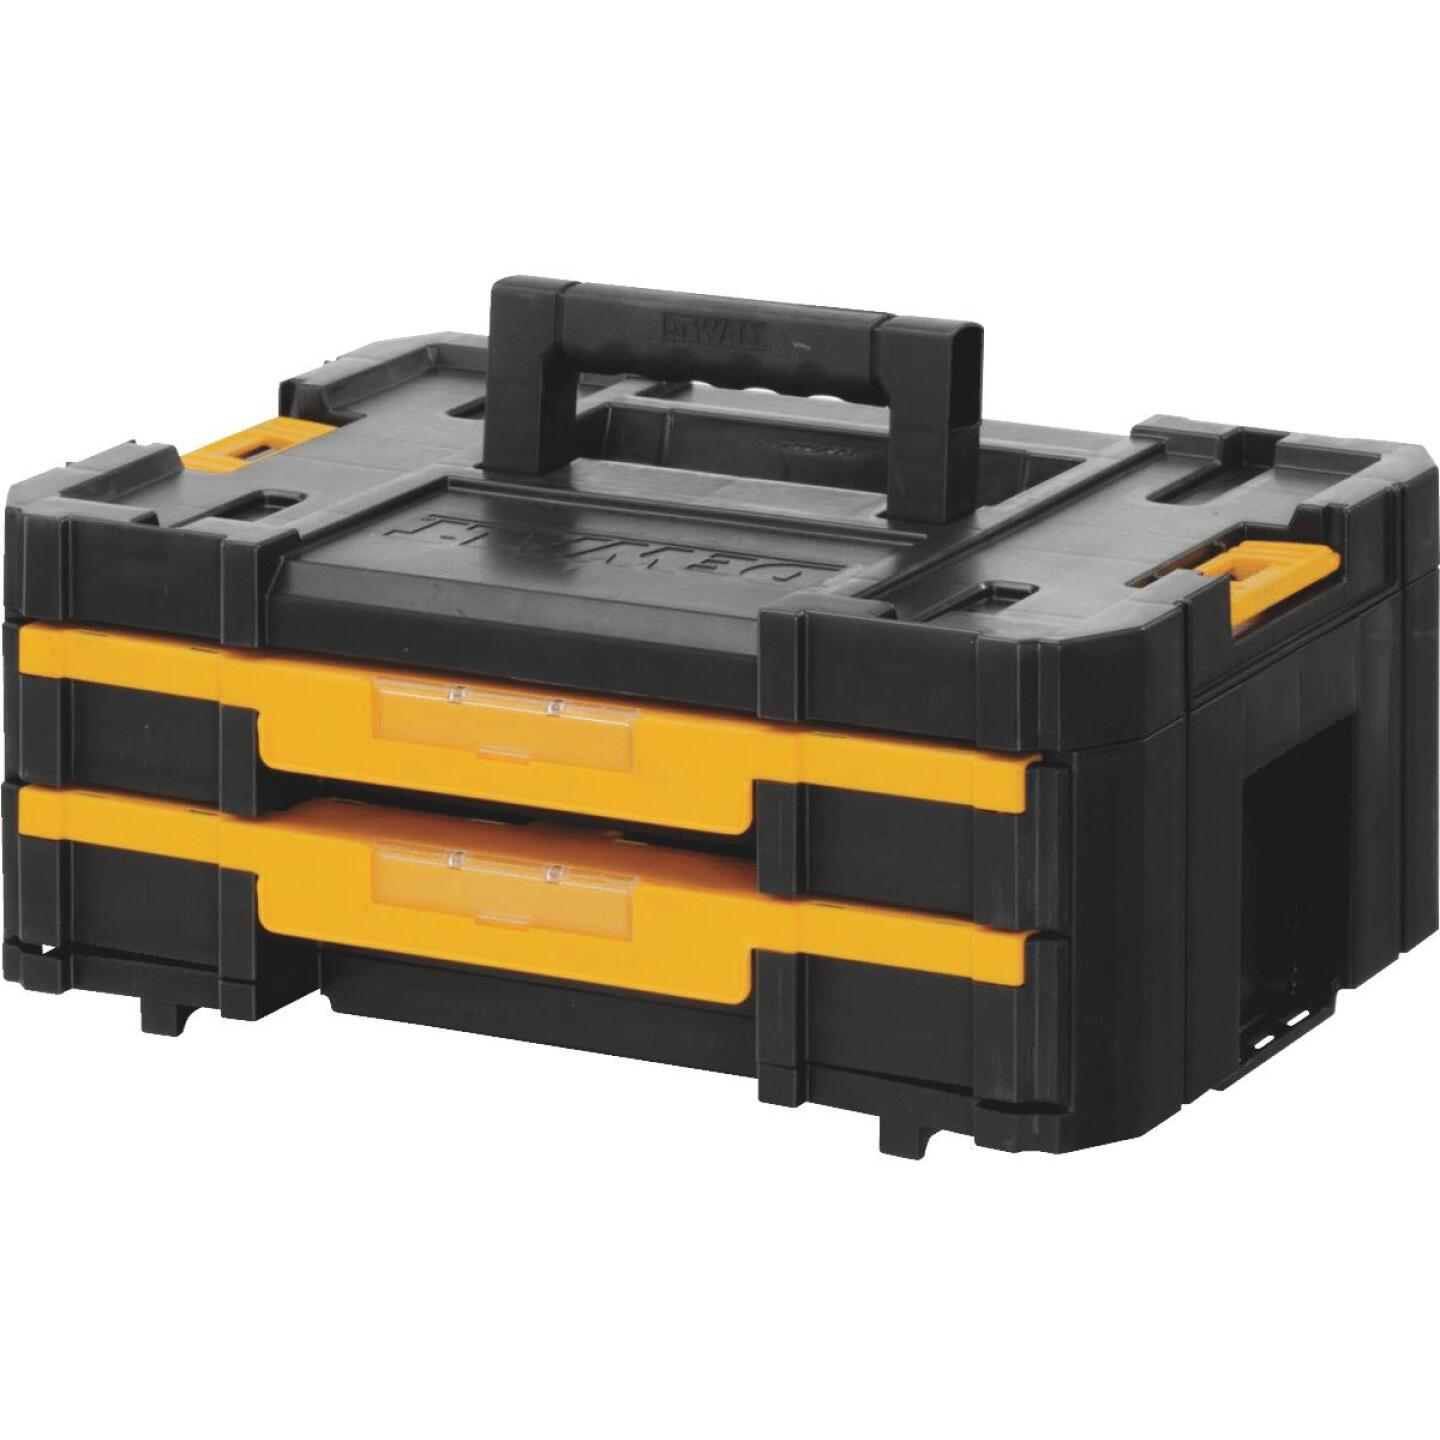 Dewalt TSTAK Case Toolbox with Drawers Image 1